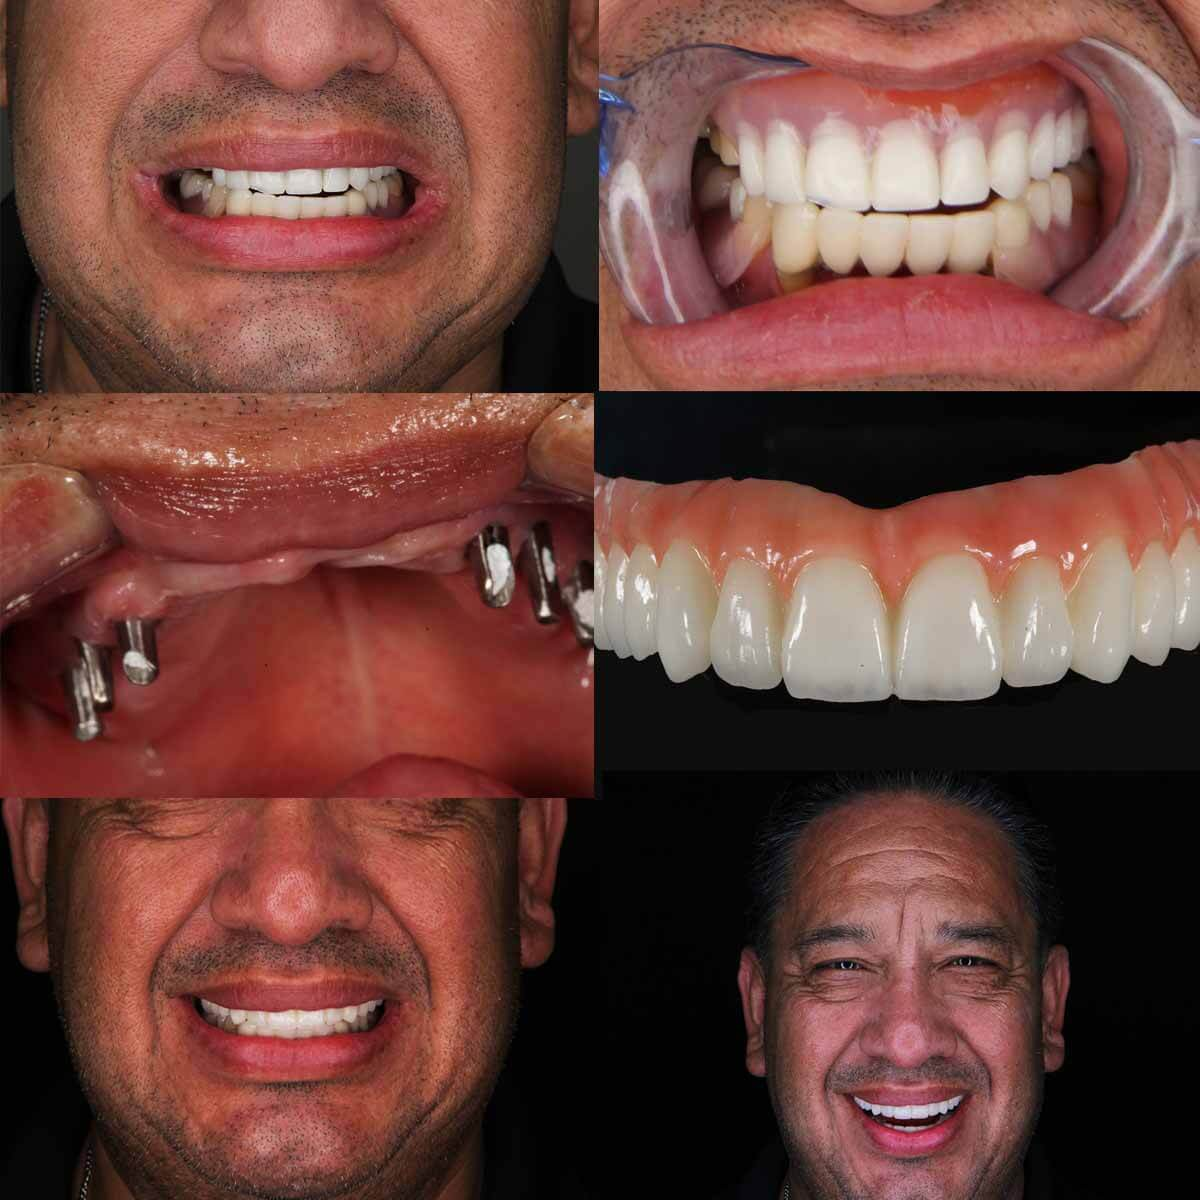 Jose - CA, Mexico Dental Implants